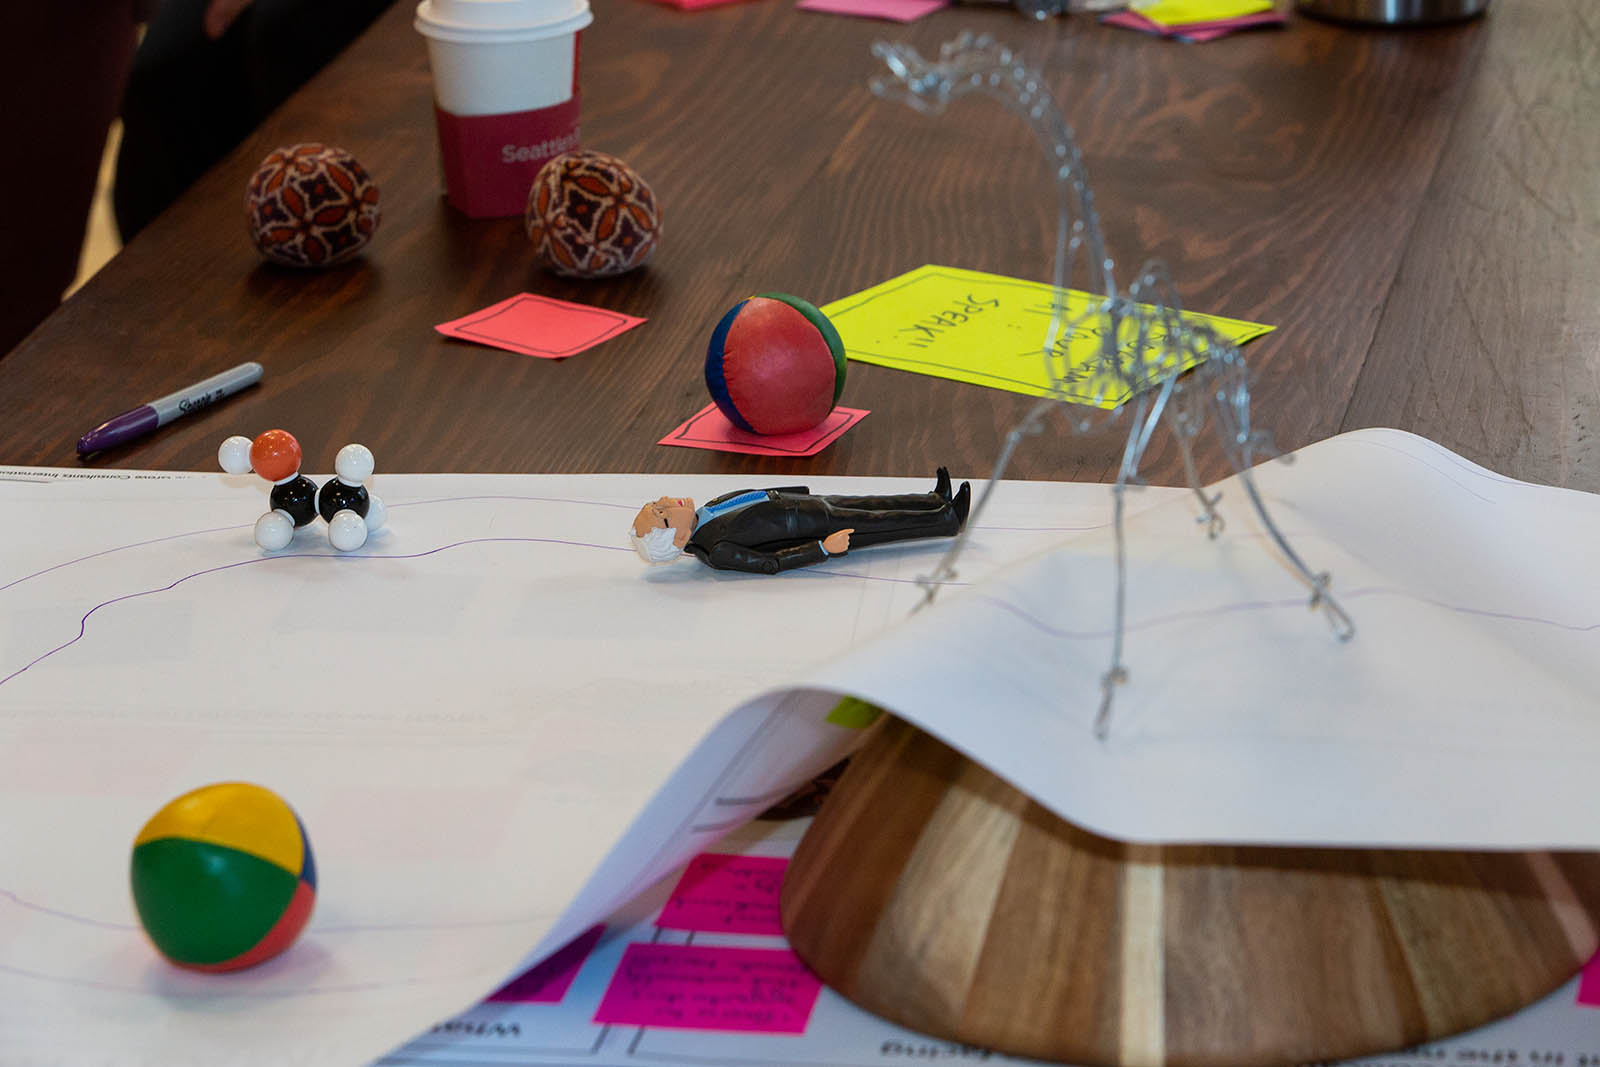 Learning and computing together. In one design group, attendees envisioned a game that was both virtual and tangible, allowing for cross-setting – and cross-generational – collaboration and problem-solving.